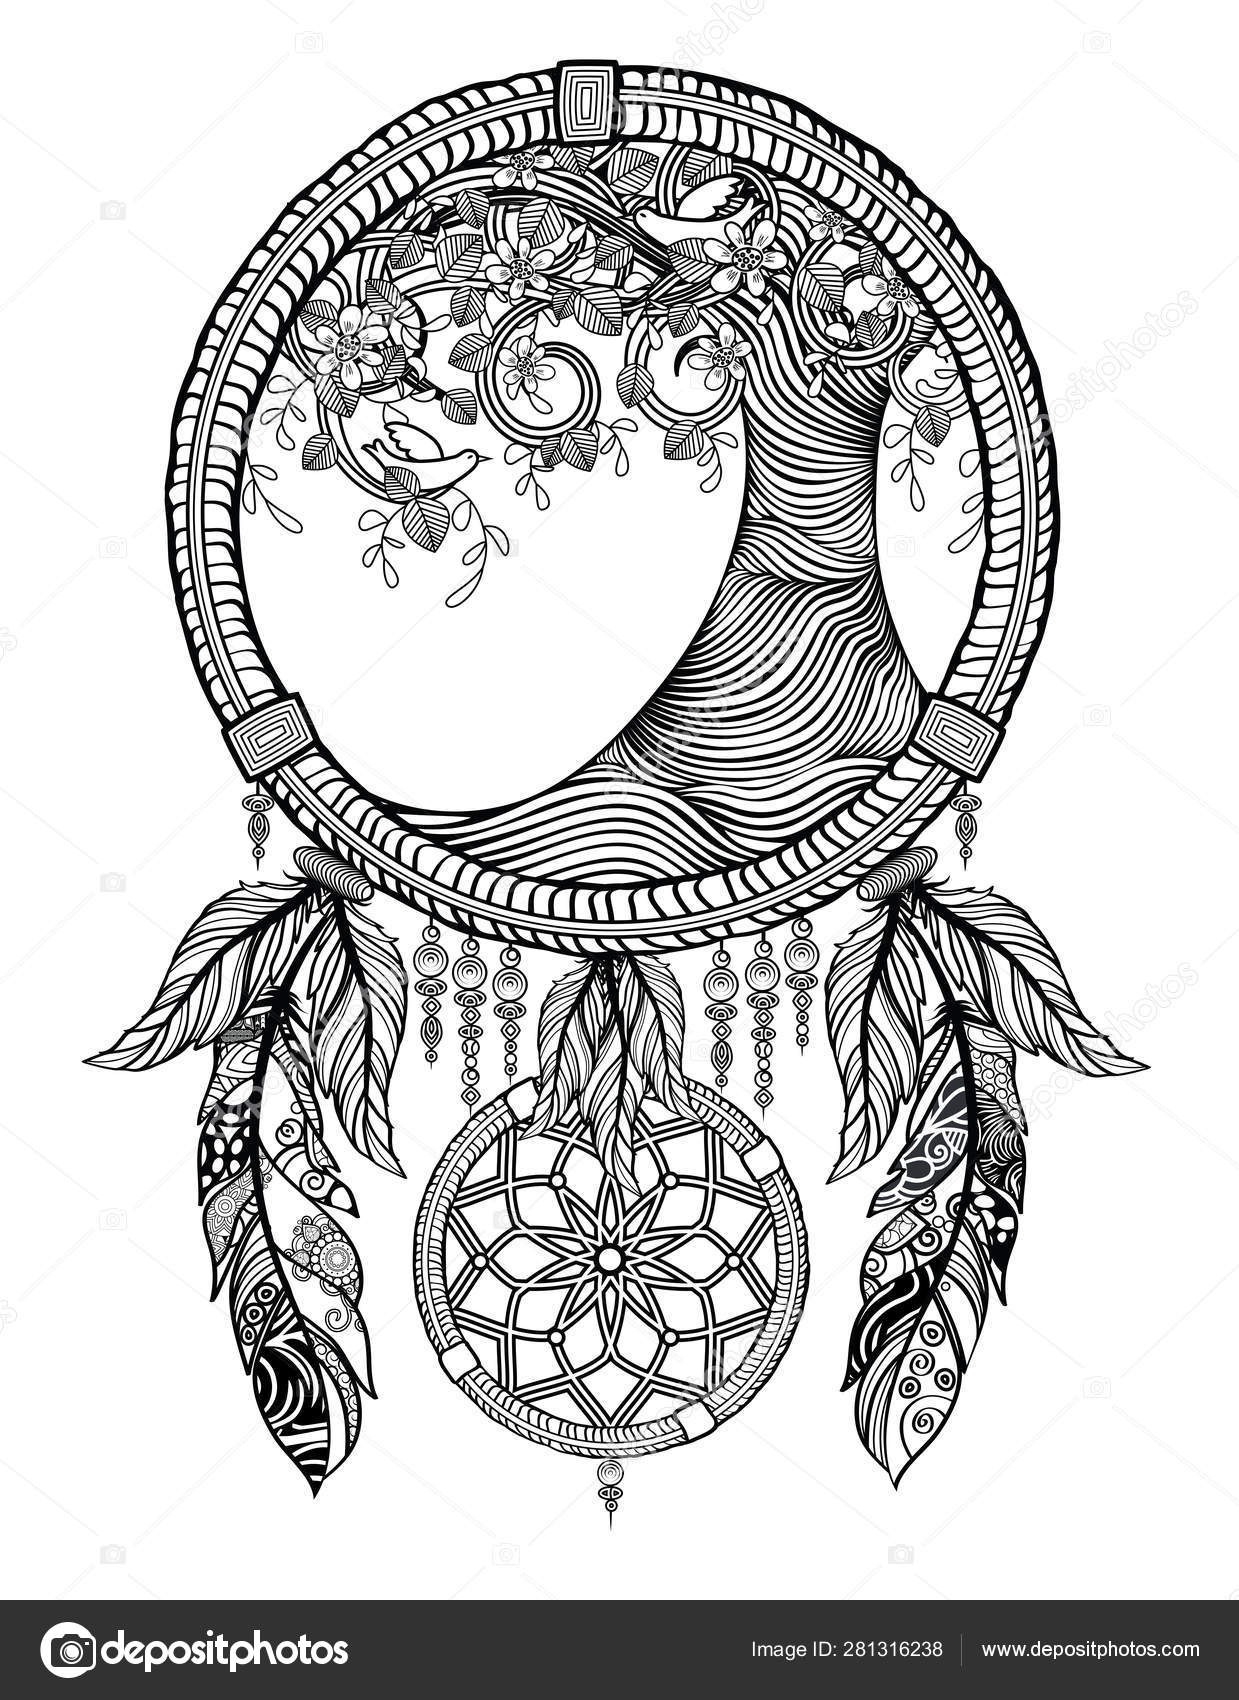 dream catcher tree coloring stock photo by smk0473 depositphotos definition of colour for coloring pages Dream Catcher Coloring Page